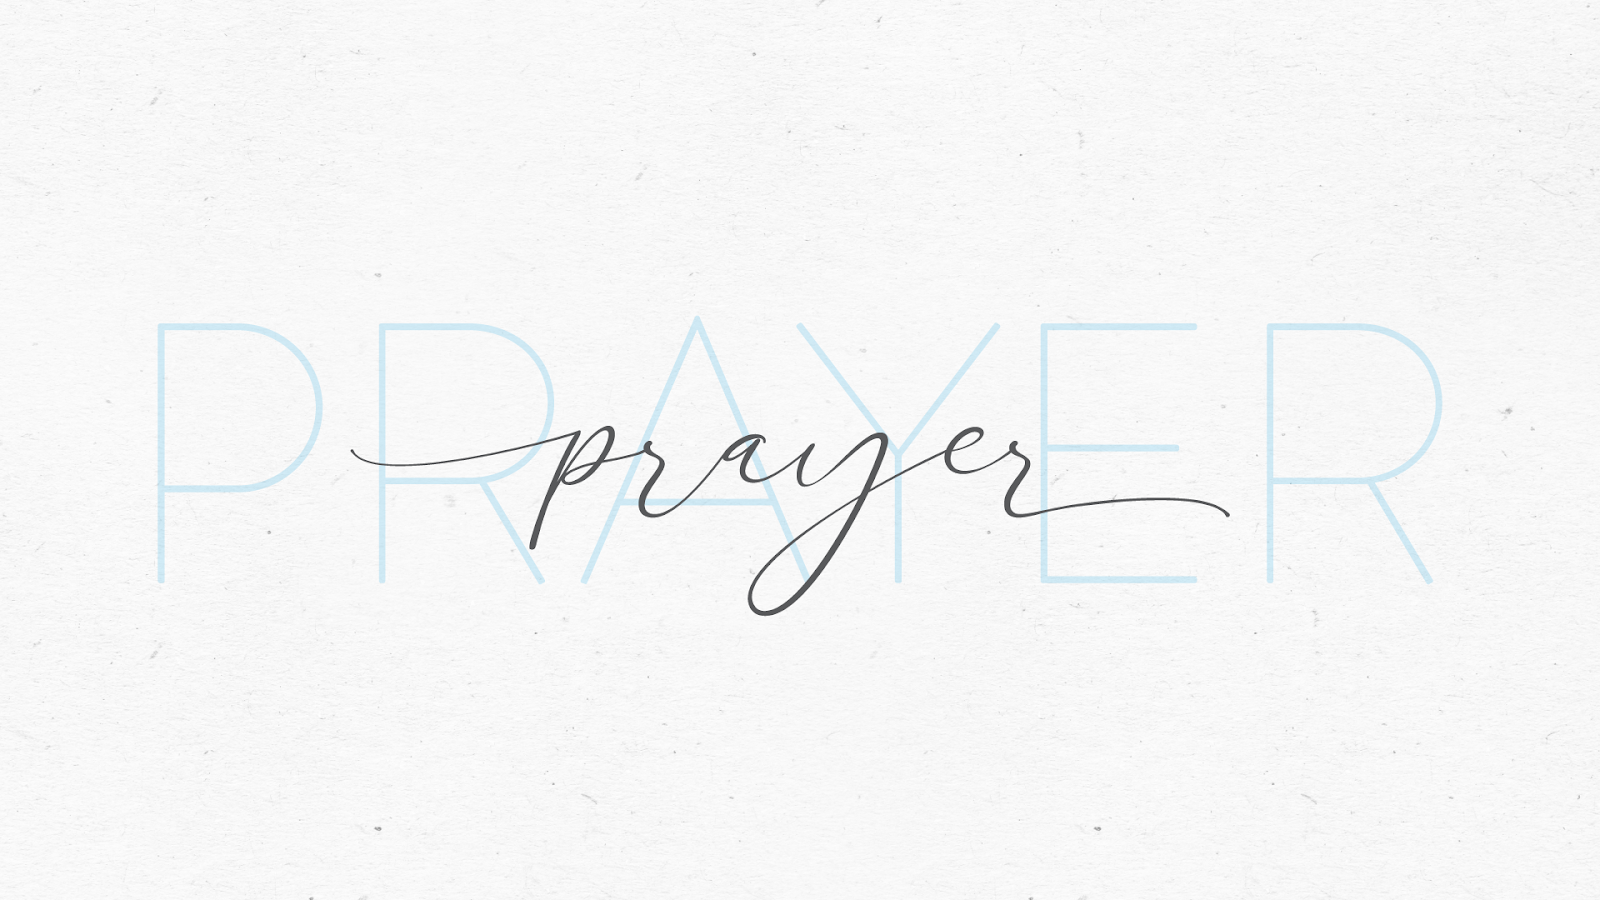 Prayer-Ministry-1920x1080.png